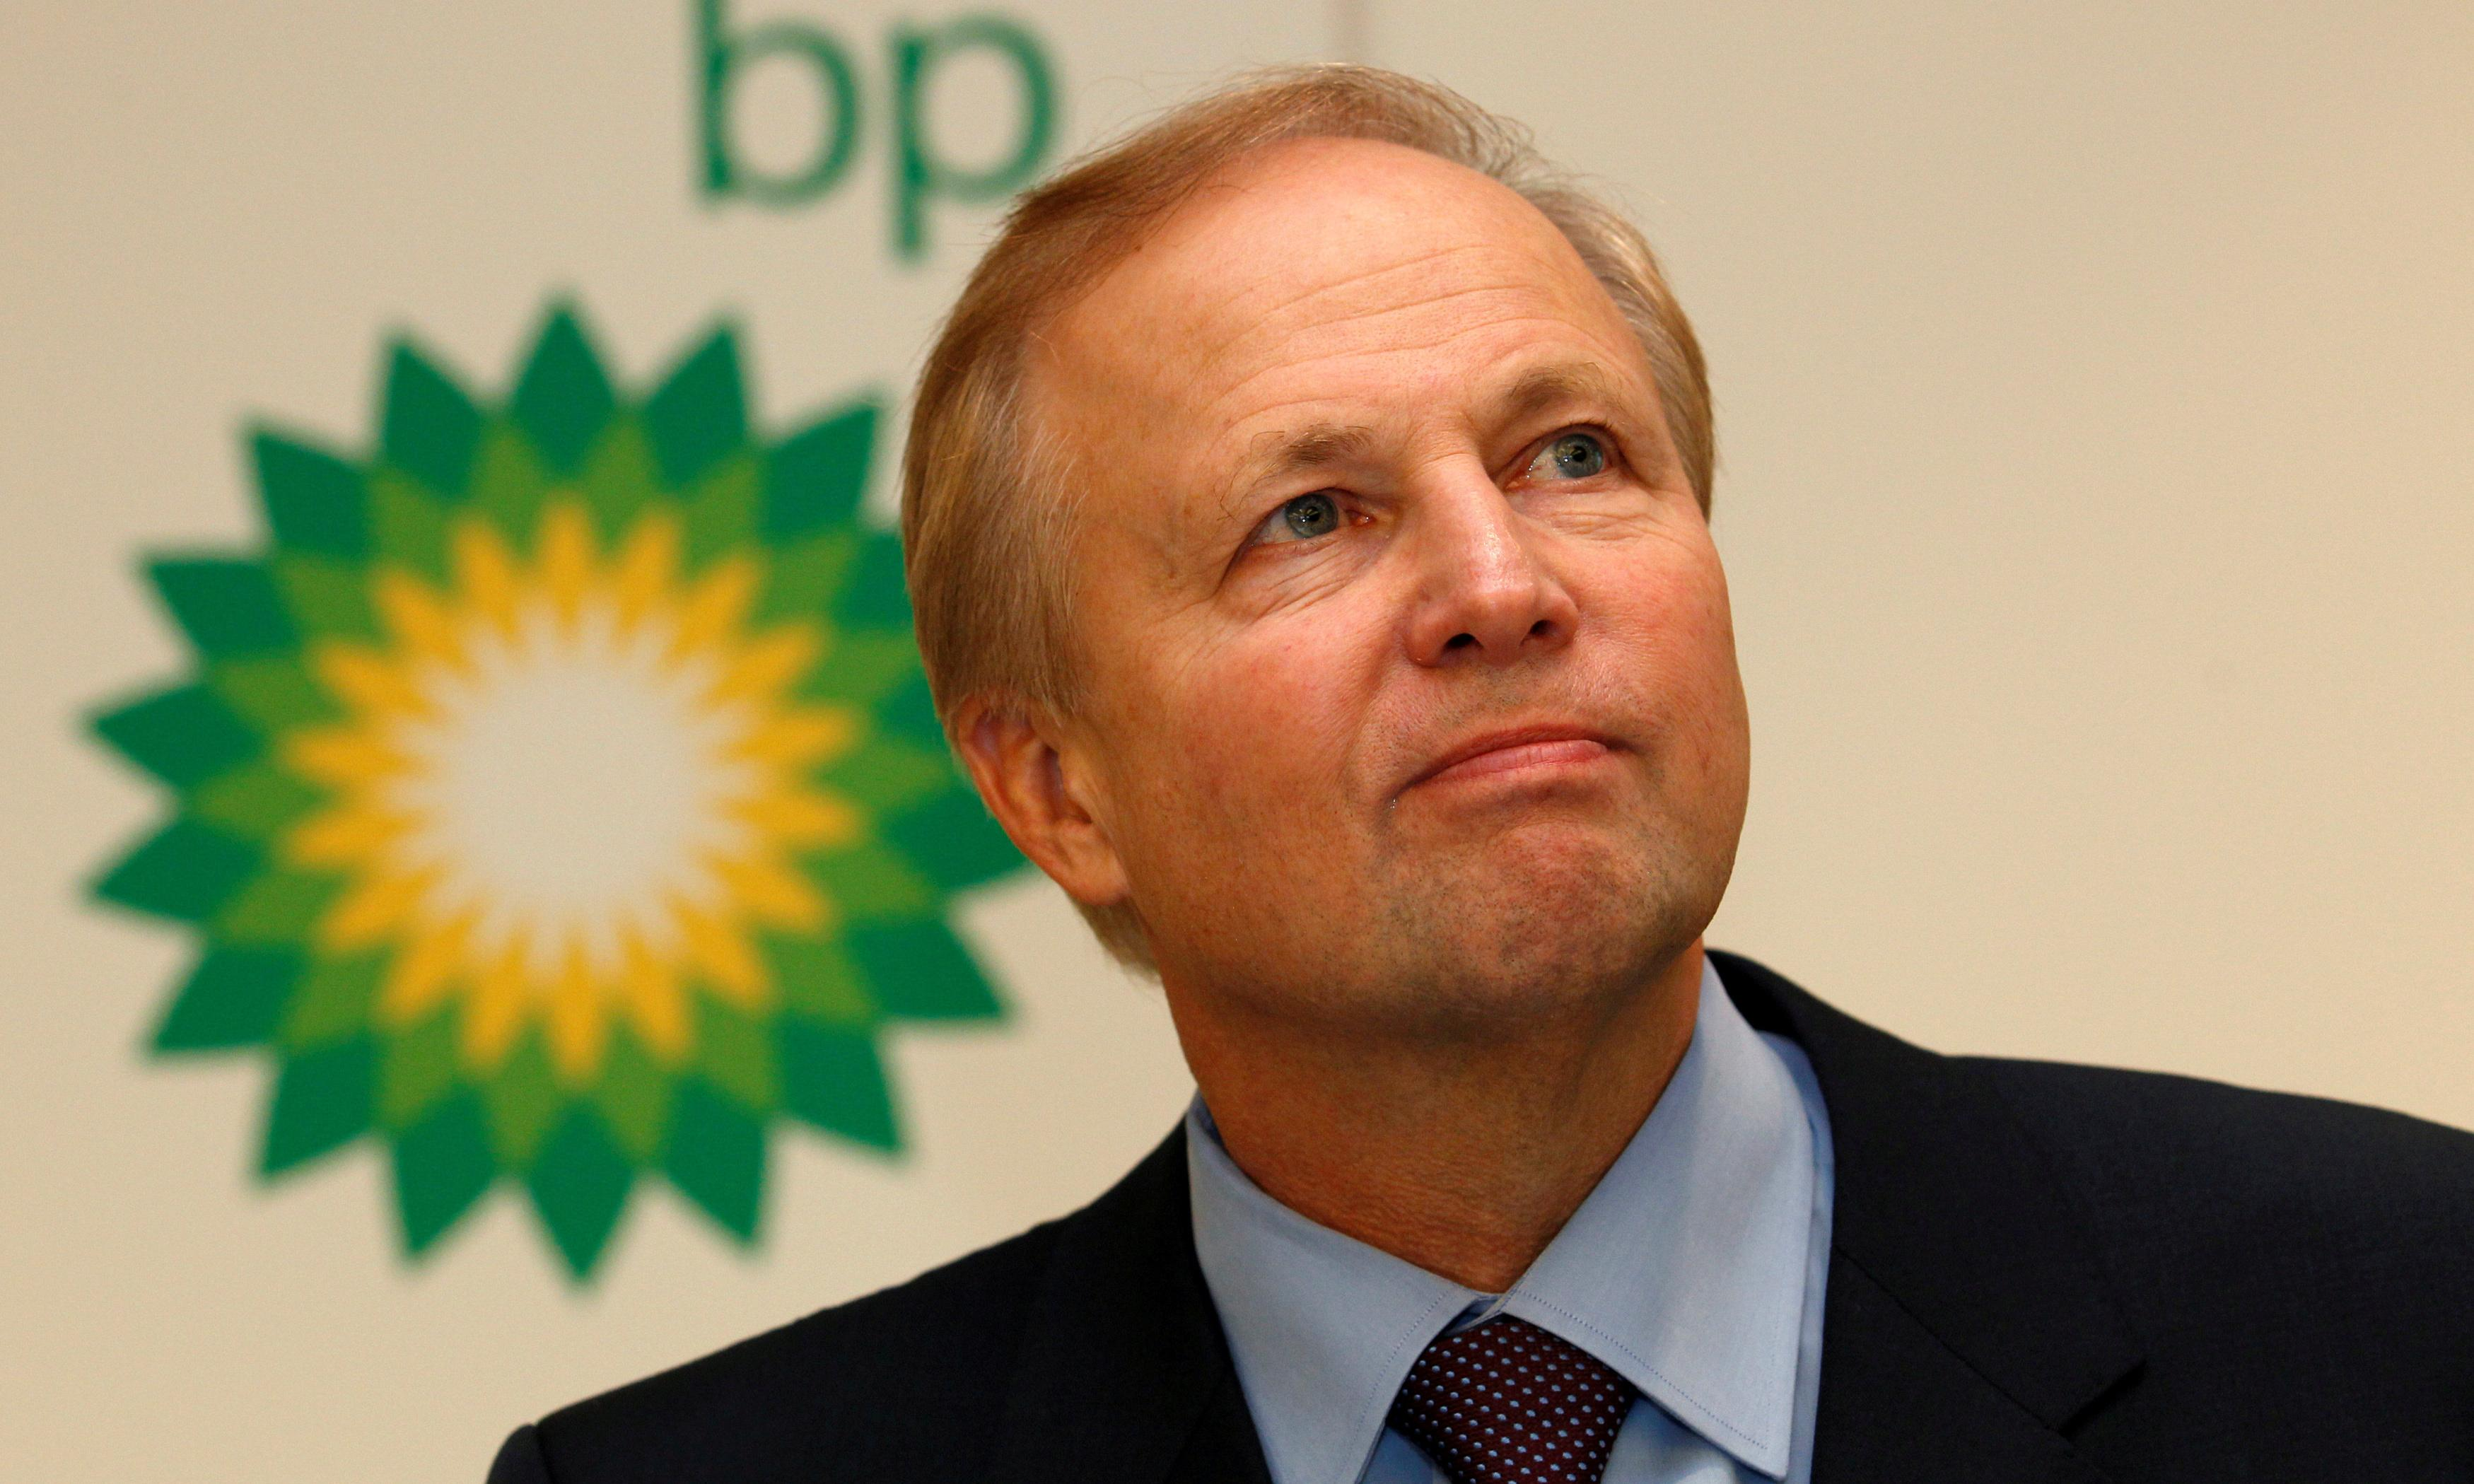 BP boss Bob Dudley to step down next year after a decade as CEO